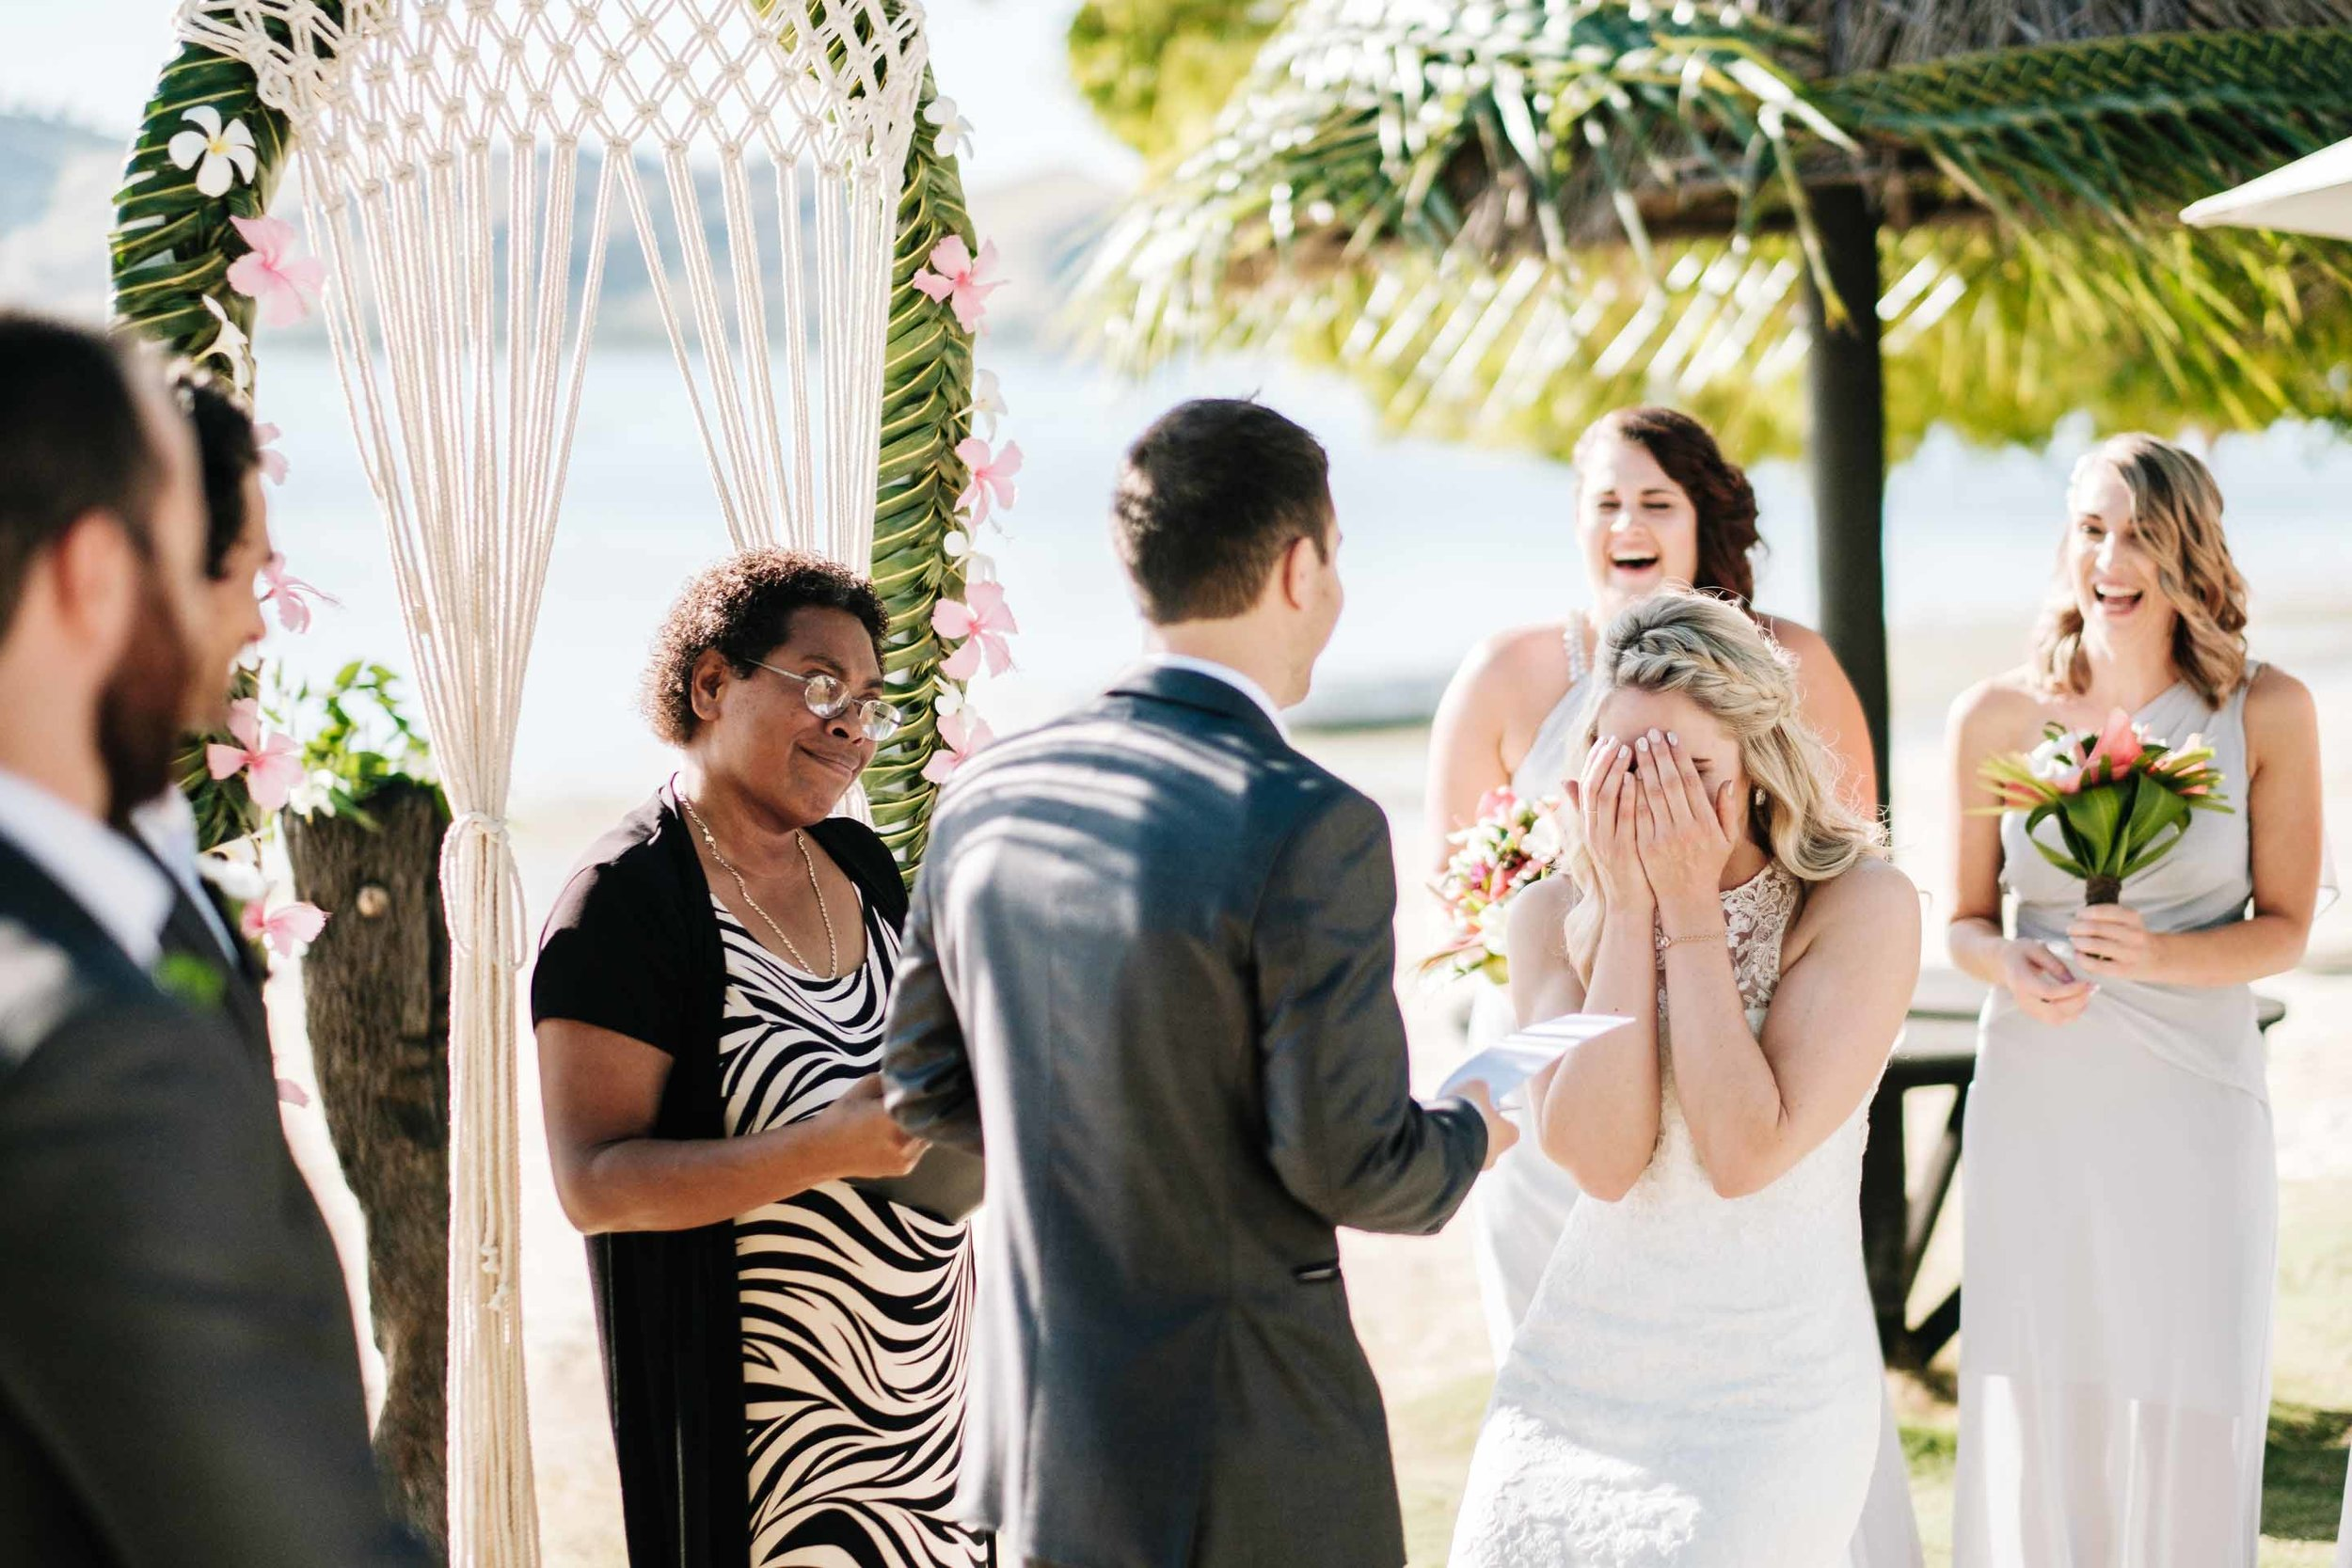 the bride reacting to the grooms vows by covering her face as she laughs